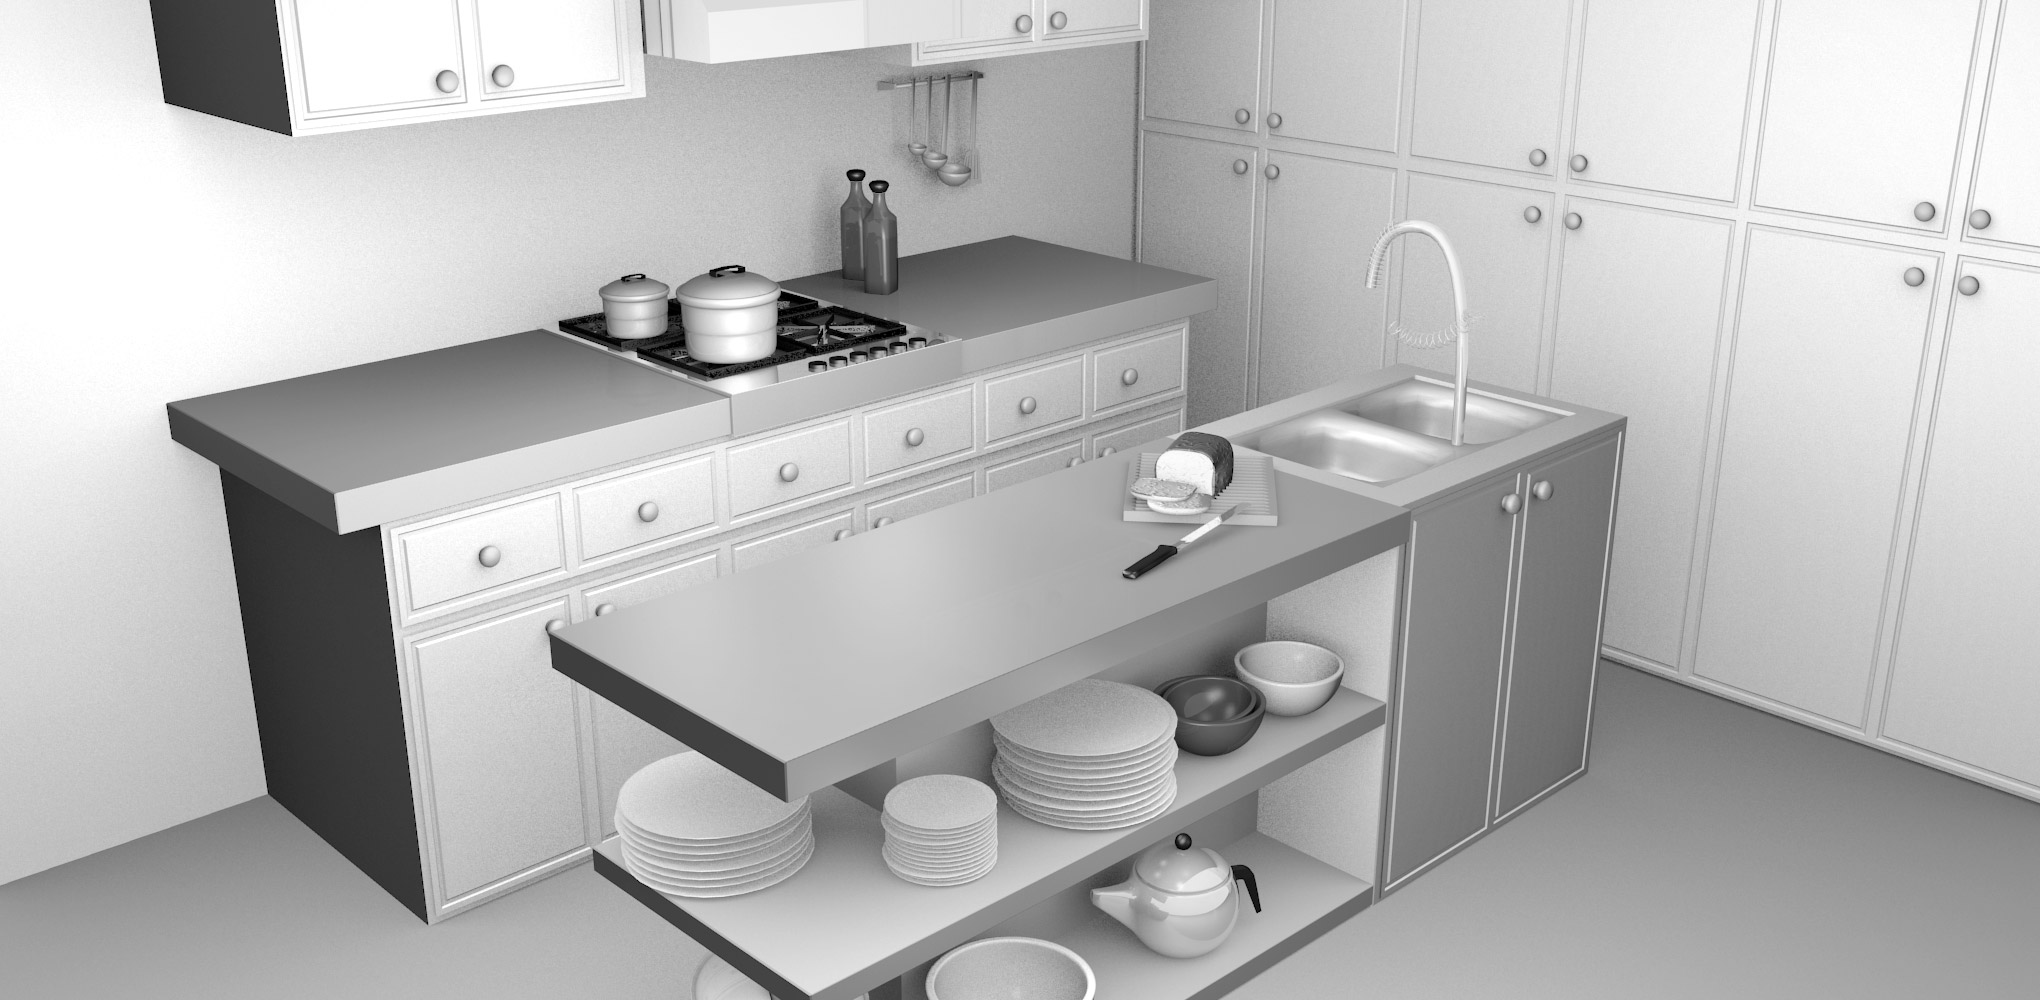 Blackspike design ltd blender 3d kitchen model for Decor 3d model